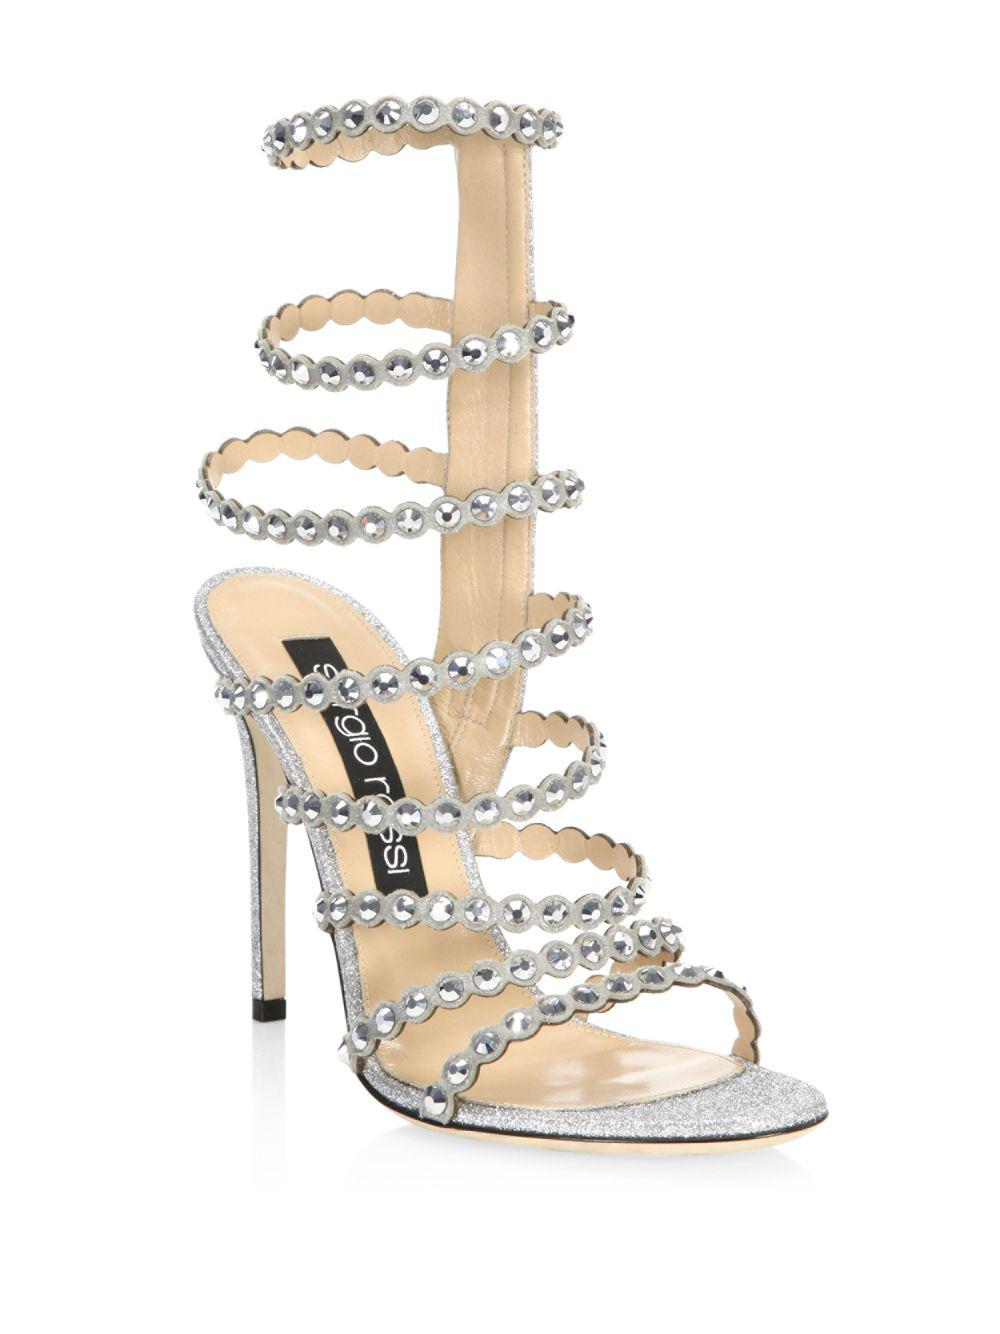 2e541d850ca3 Lyst - Sergio Rossi Crystal-embellished Gladiator Sandals in Gray